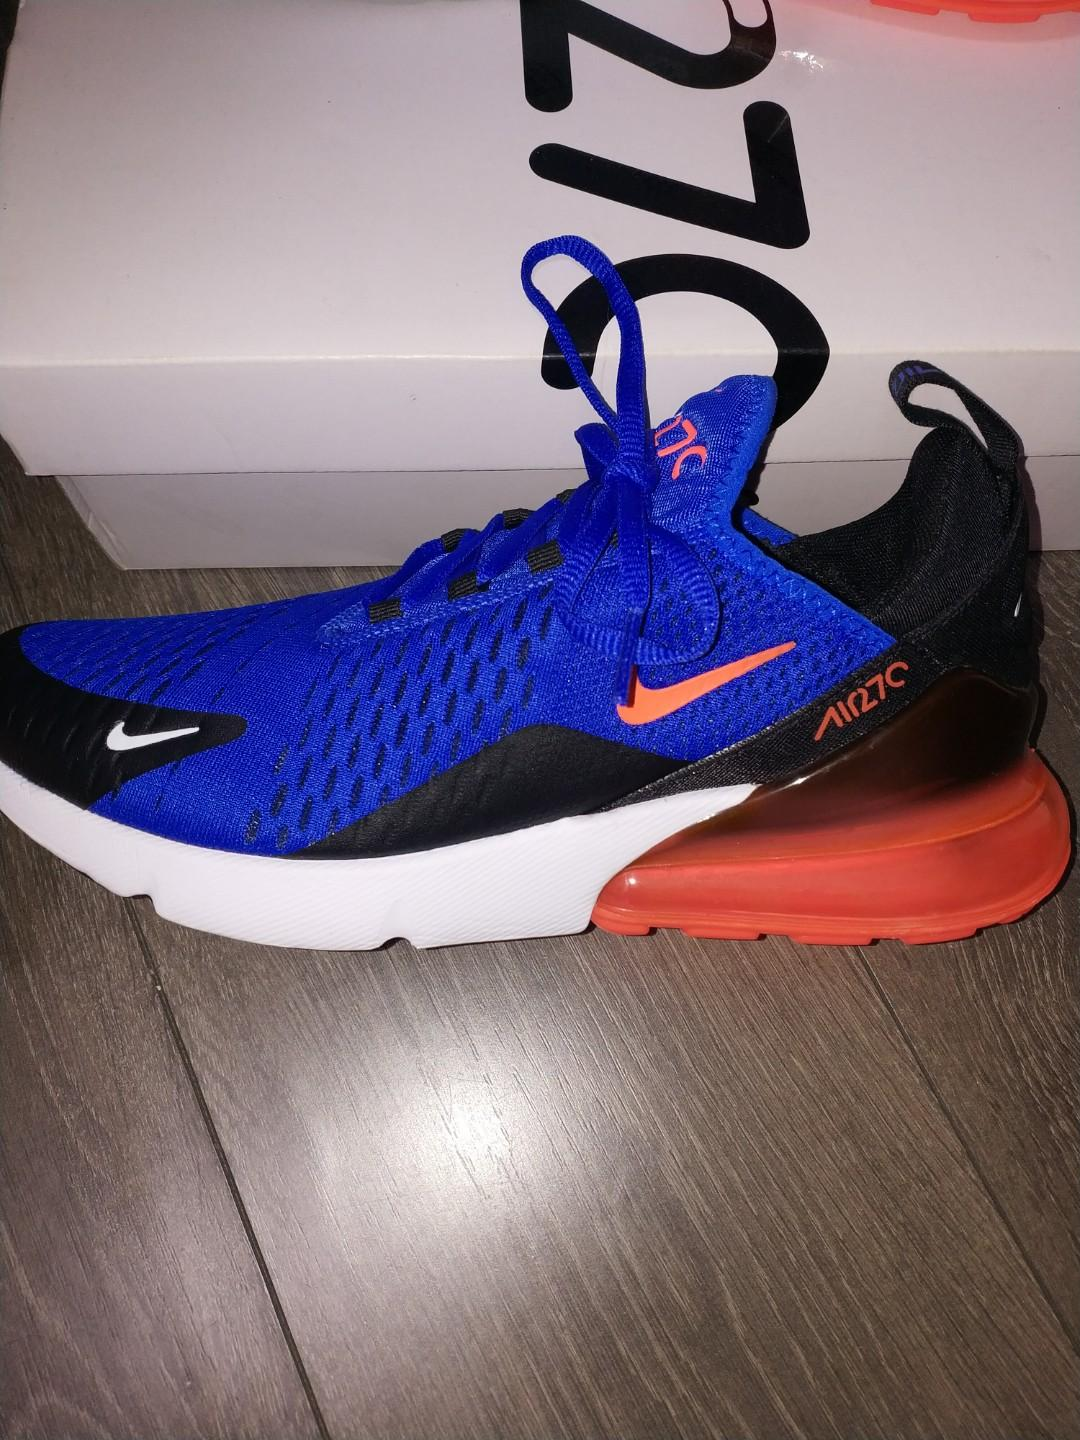 brand new 66132 31218 Nike Air Max 270, Men's Fashion, Footwear, Sneakers on Carousell